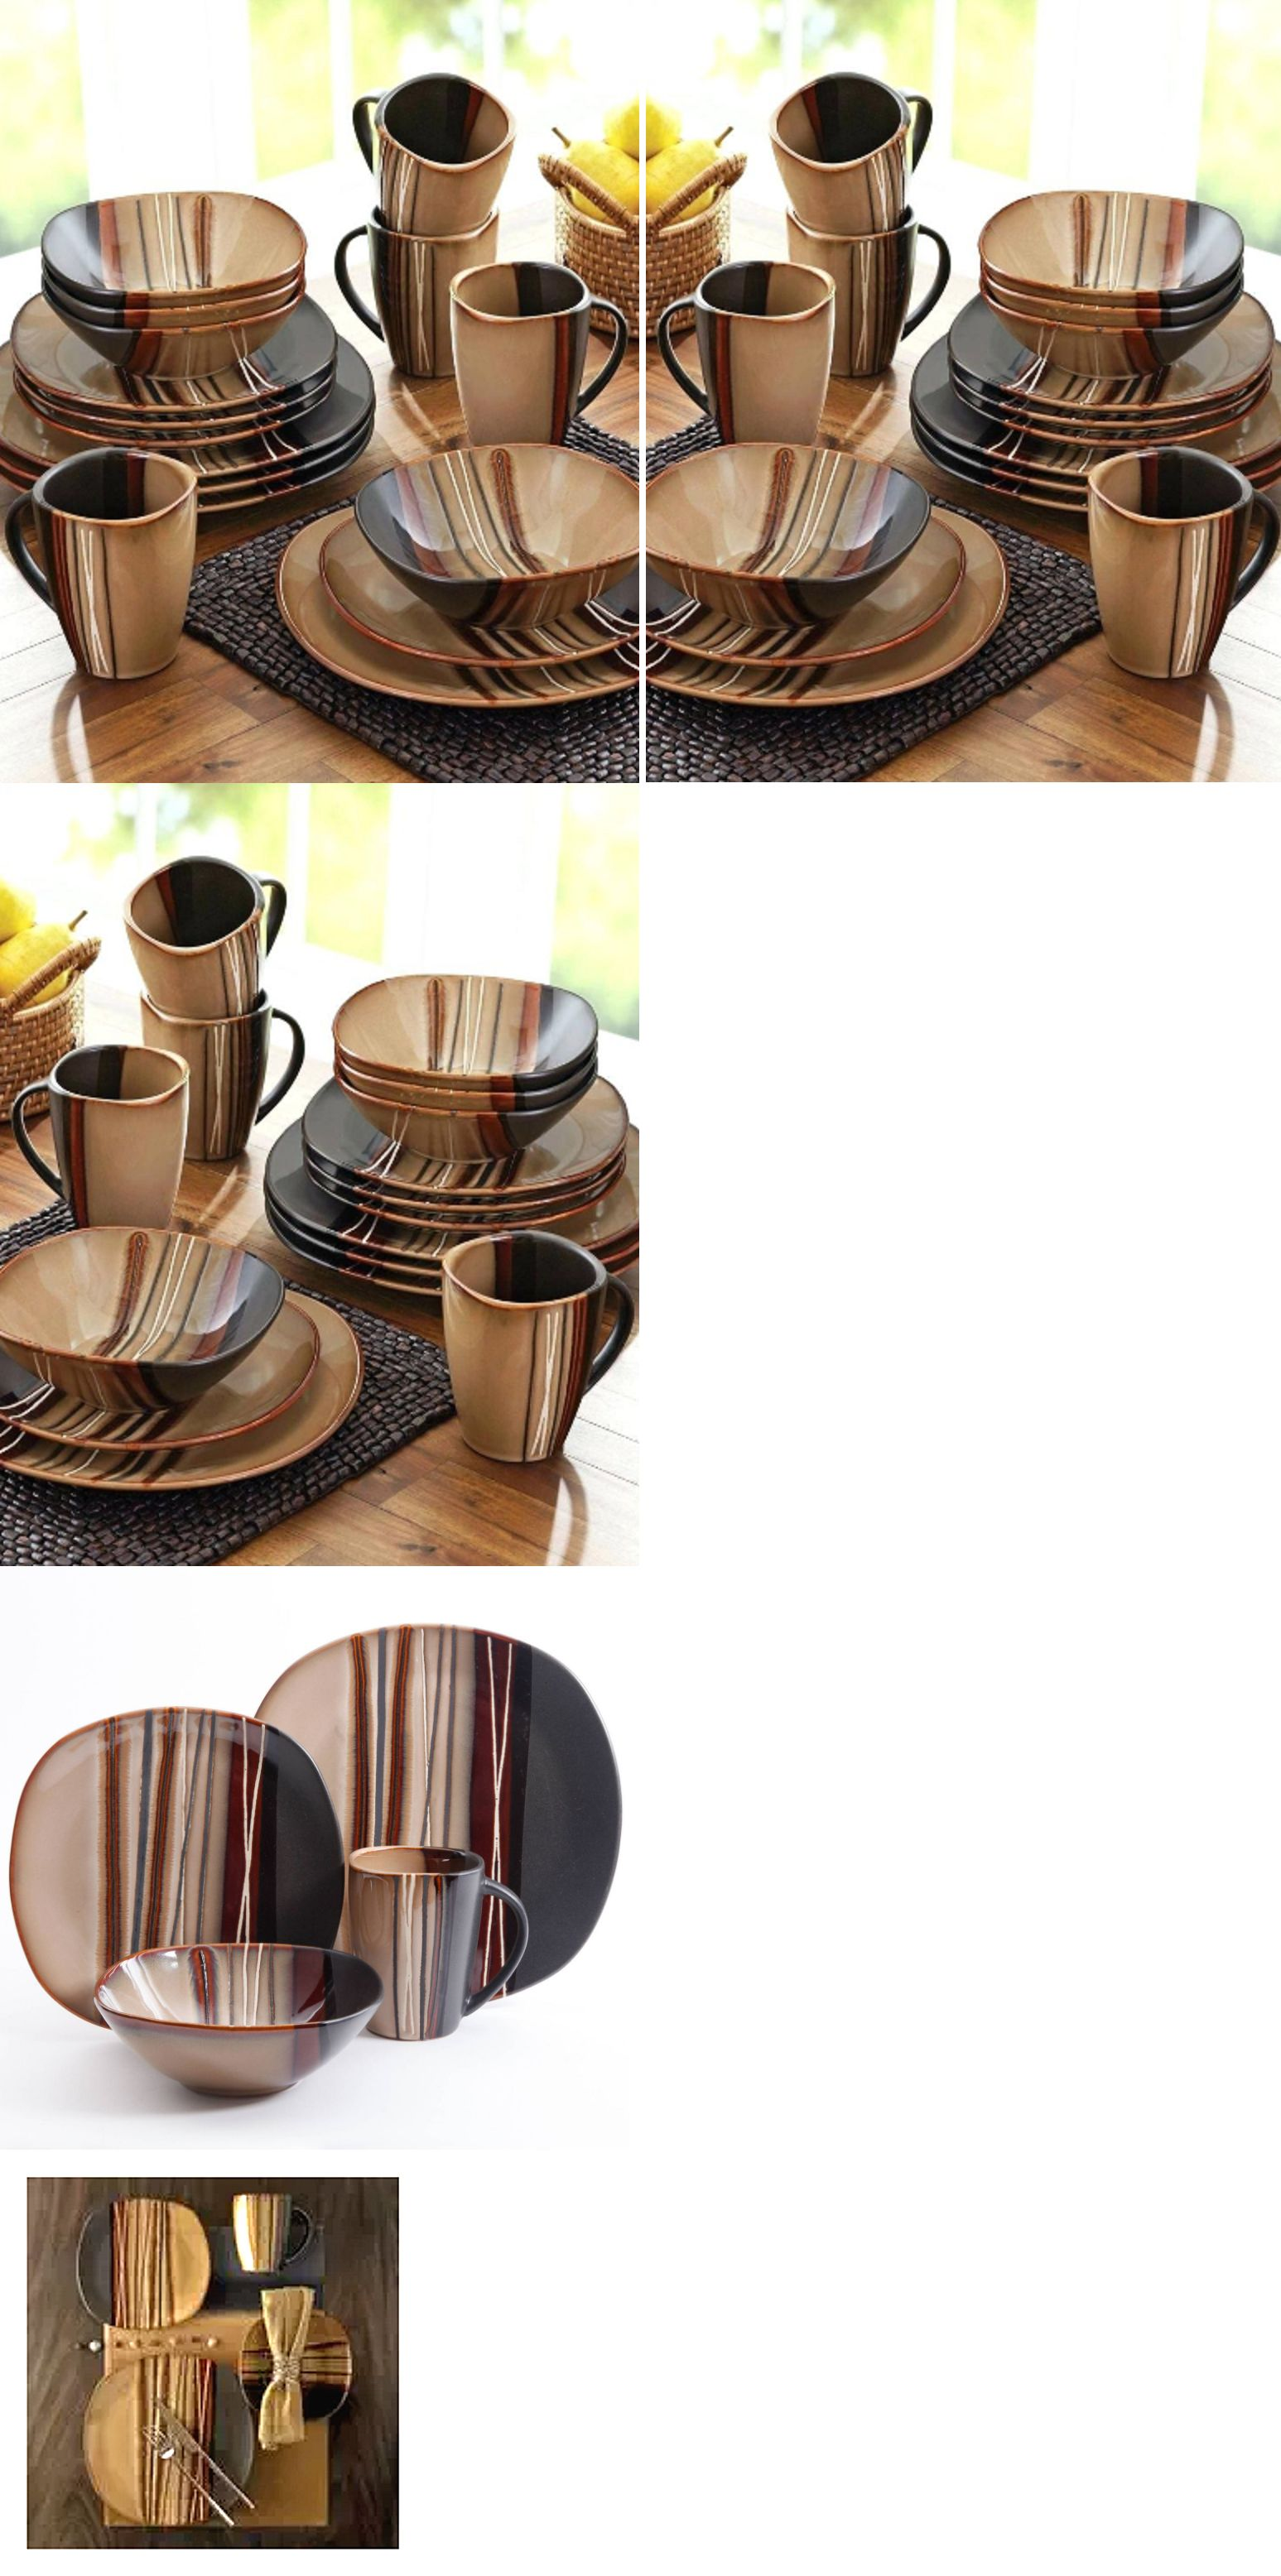 Kitchen China Dishes Island Range Dinner Service Sets 36032 32 Piece Square Dinnerware Set Stoneware Plates Mugs Brown Buy It Now Only 99 On Ebay